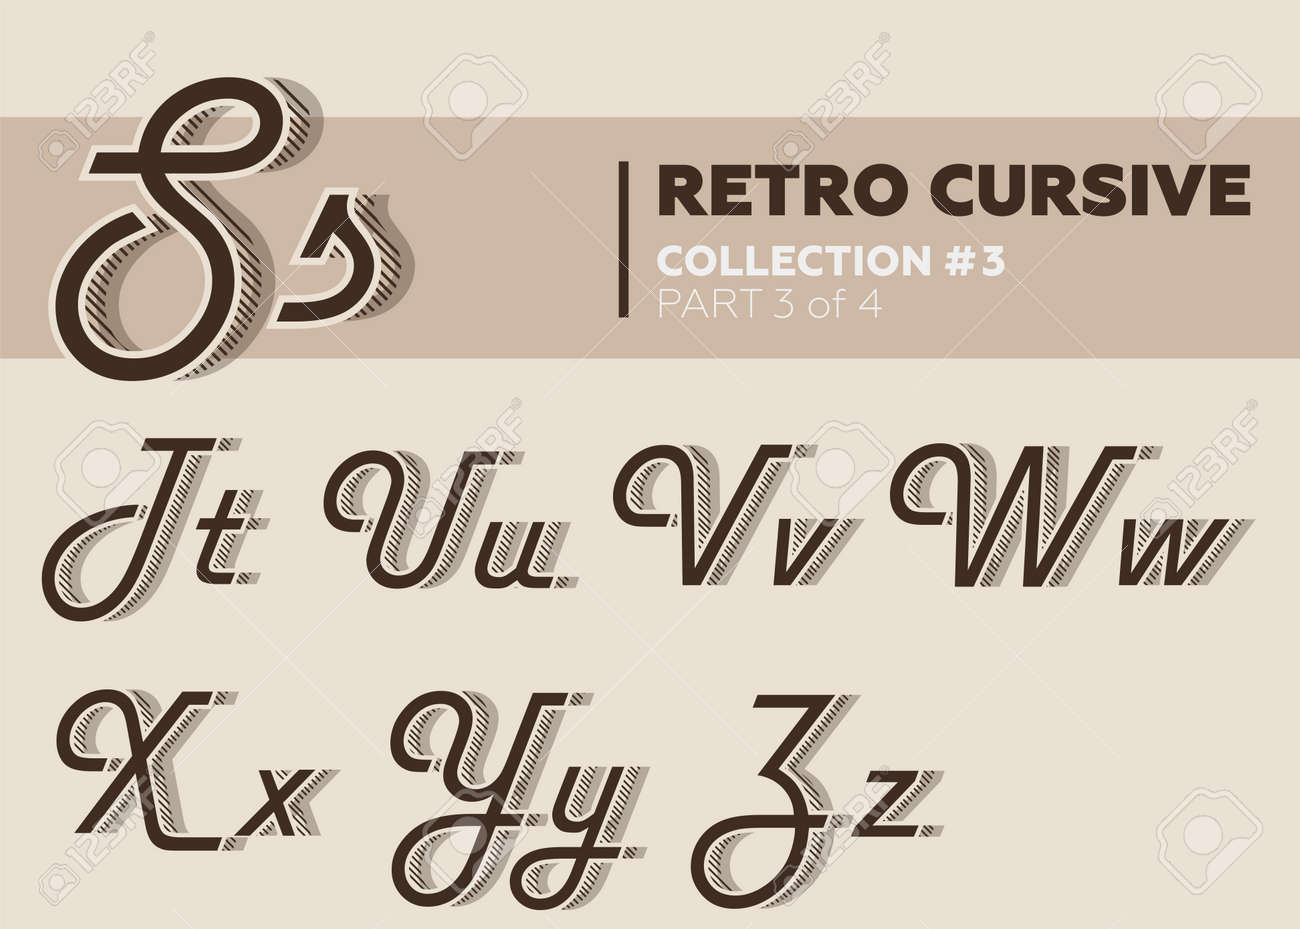 Retro Character Typeset  Vintage Layered Font with Striped Shadow